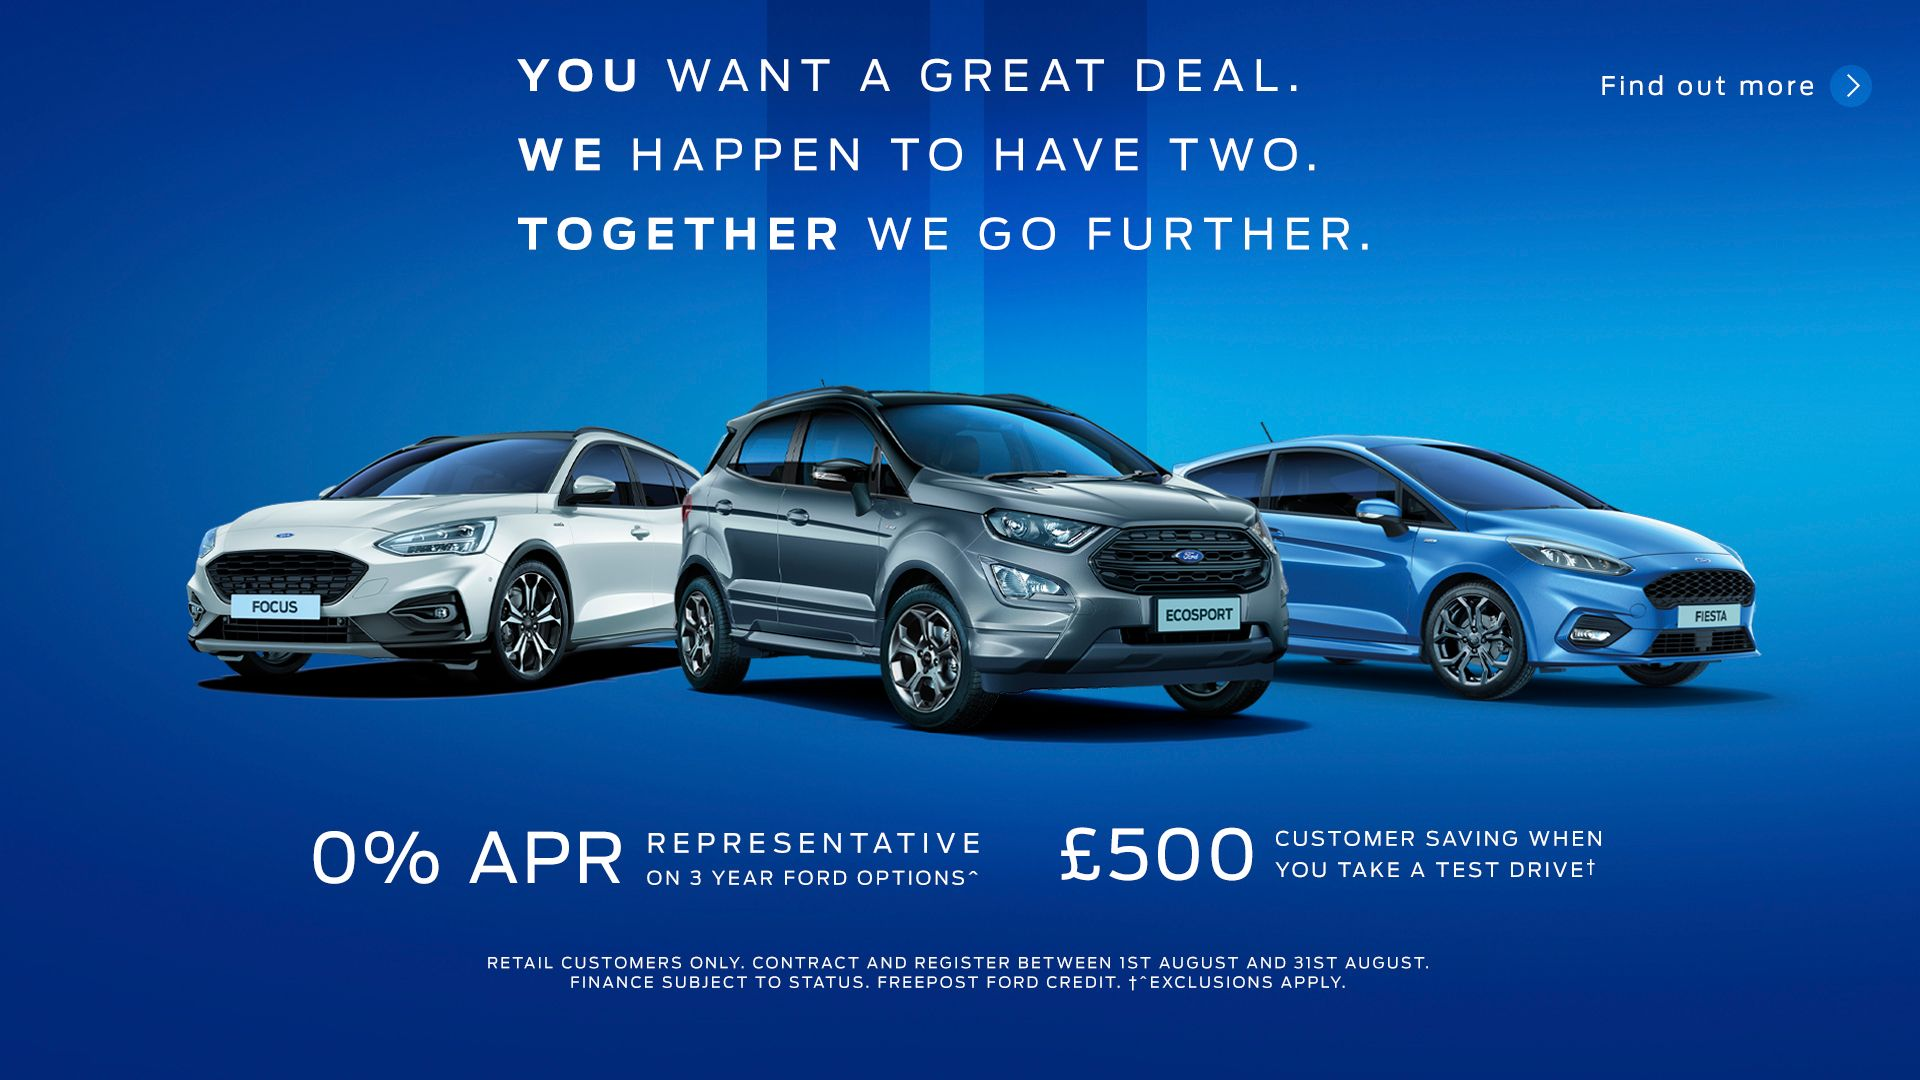 £500 Customer Saving when you take a Test Drive this August!